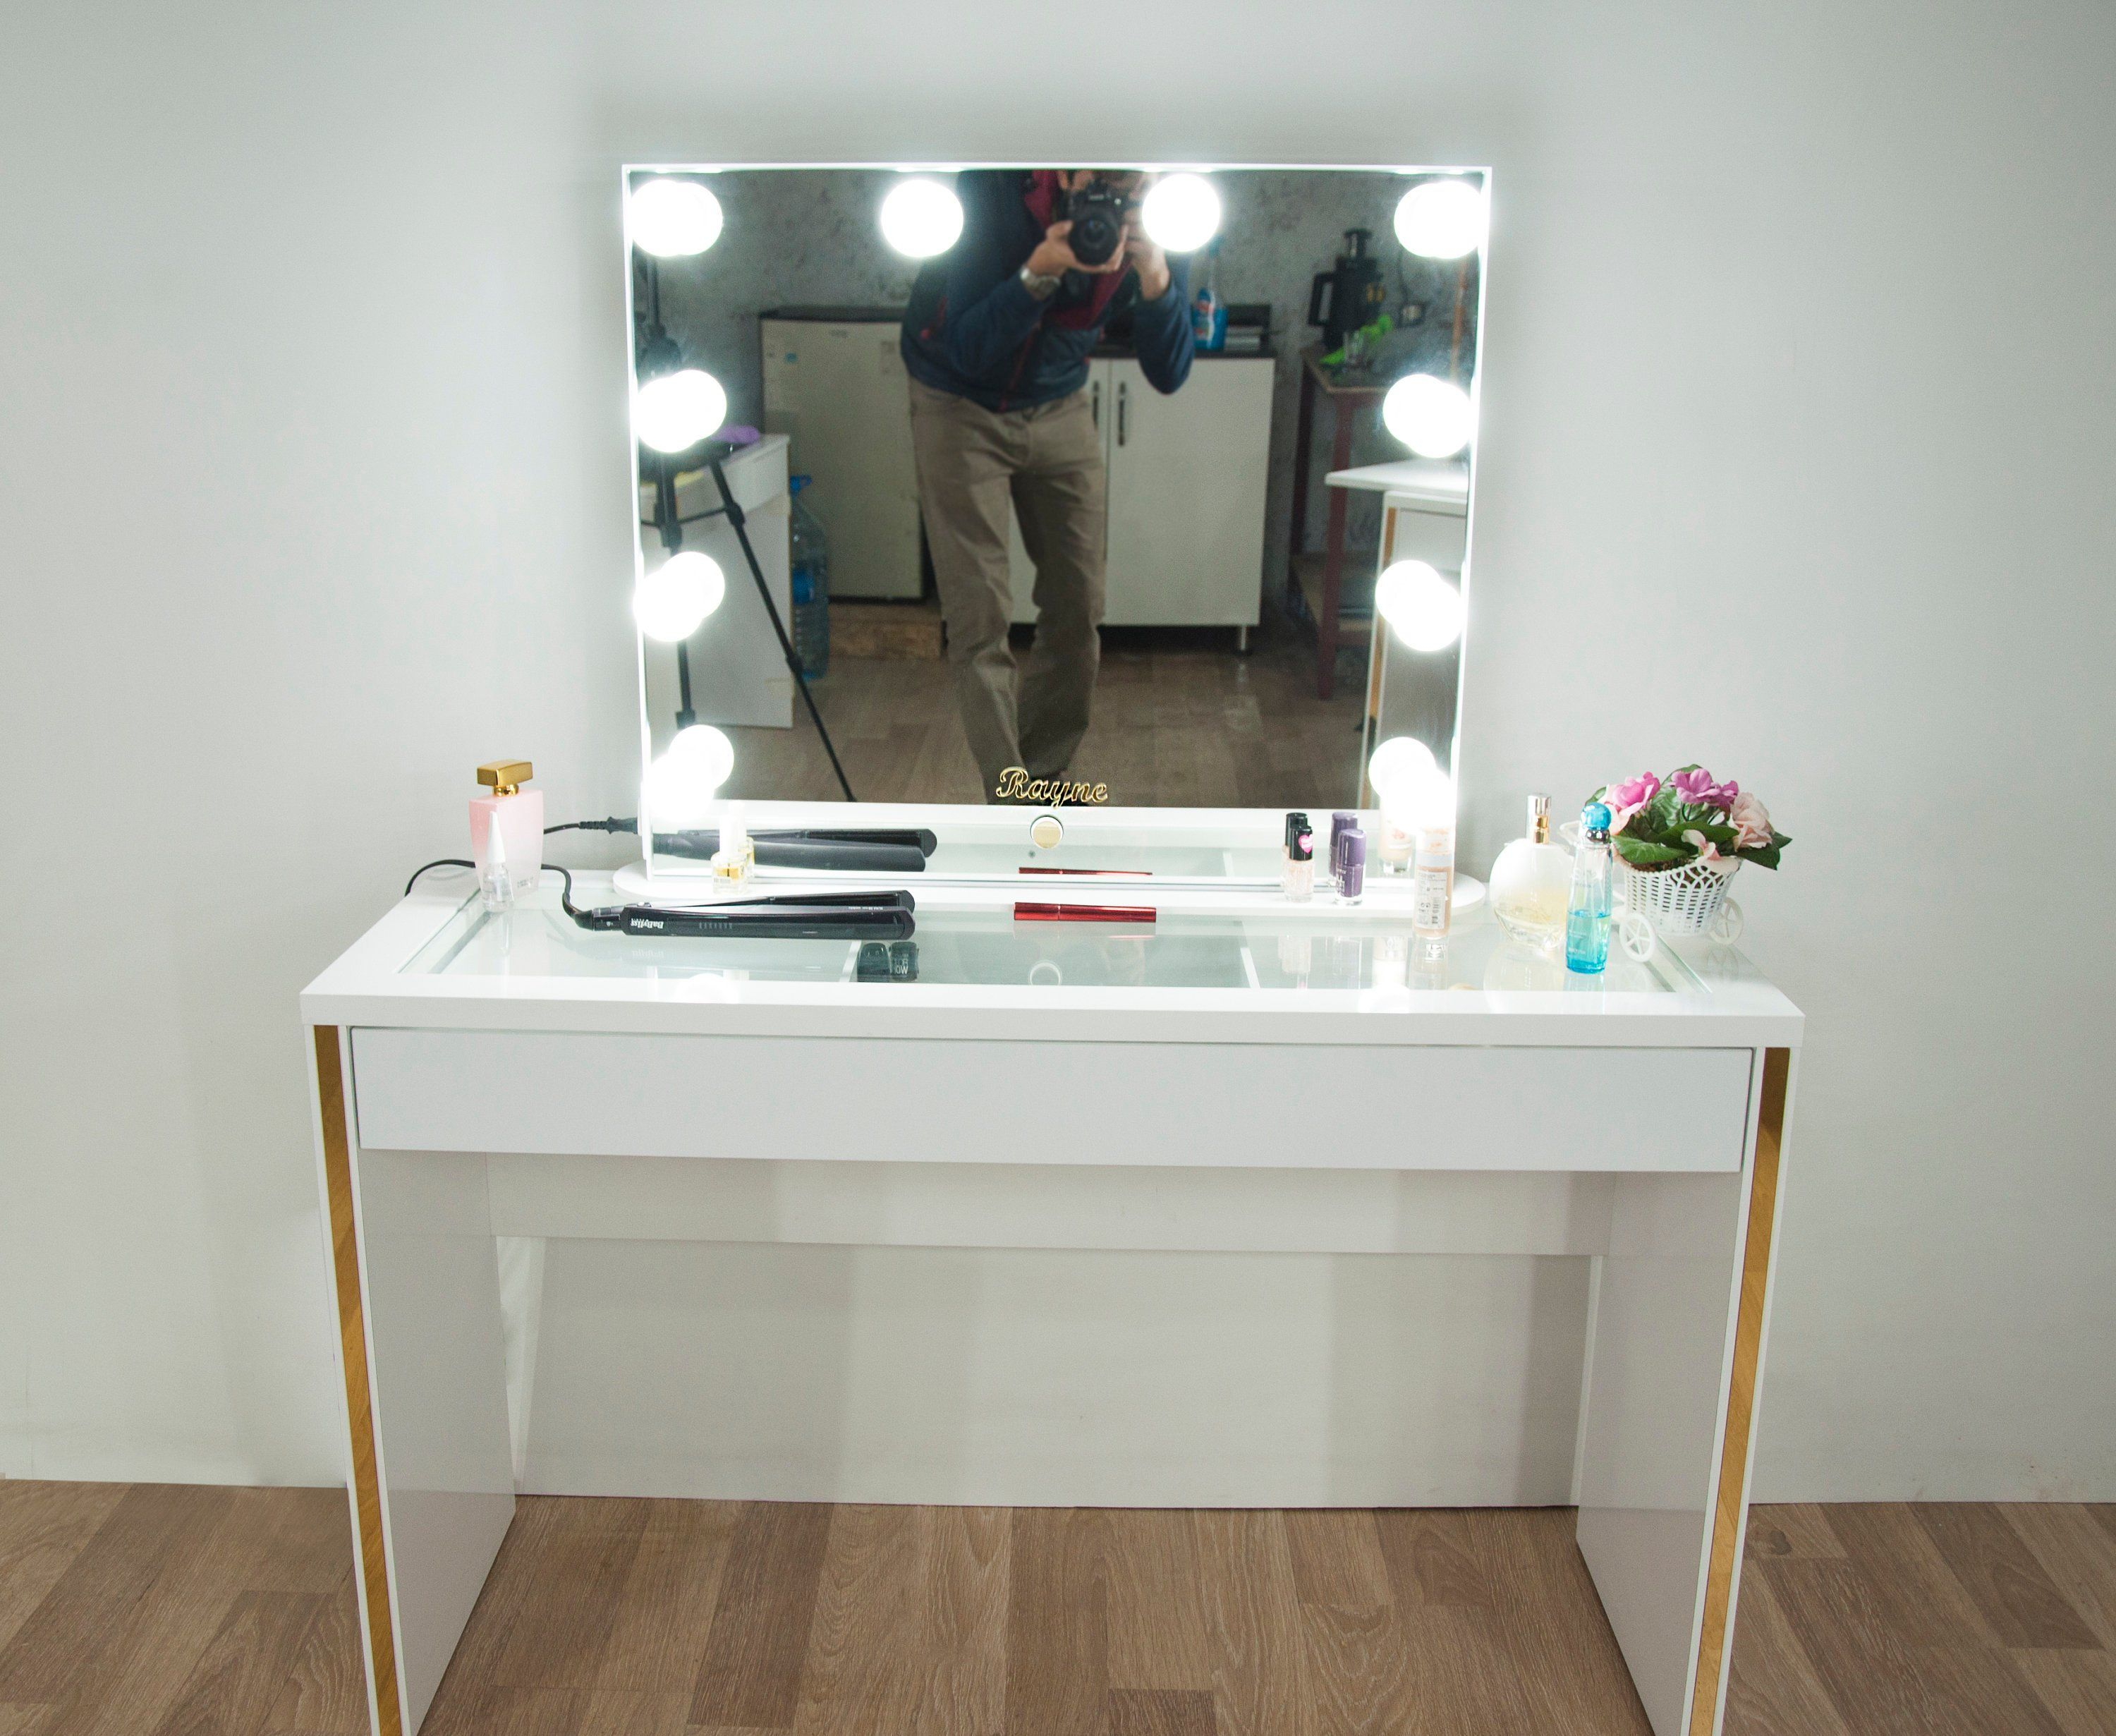 Hollywood Glow XL Pro Illuminated Vanity Mirror and Make